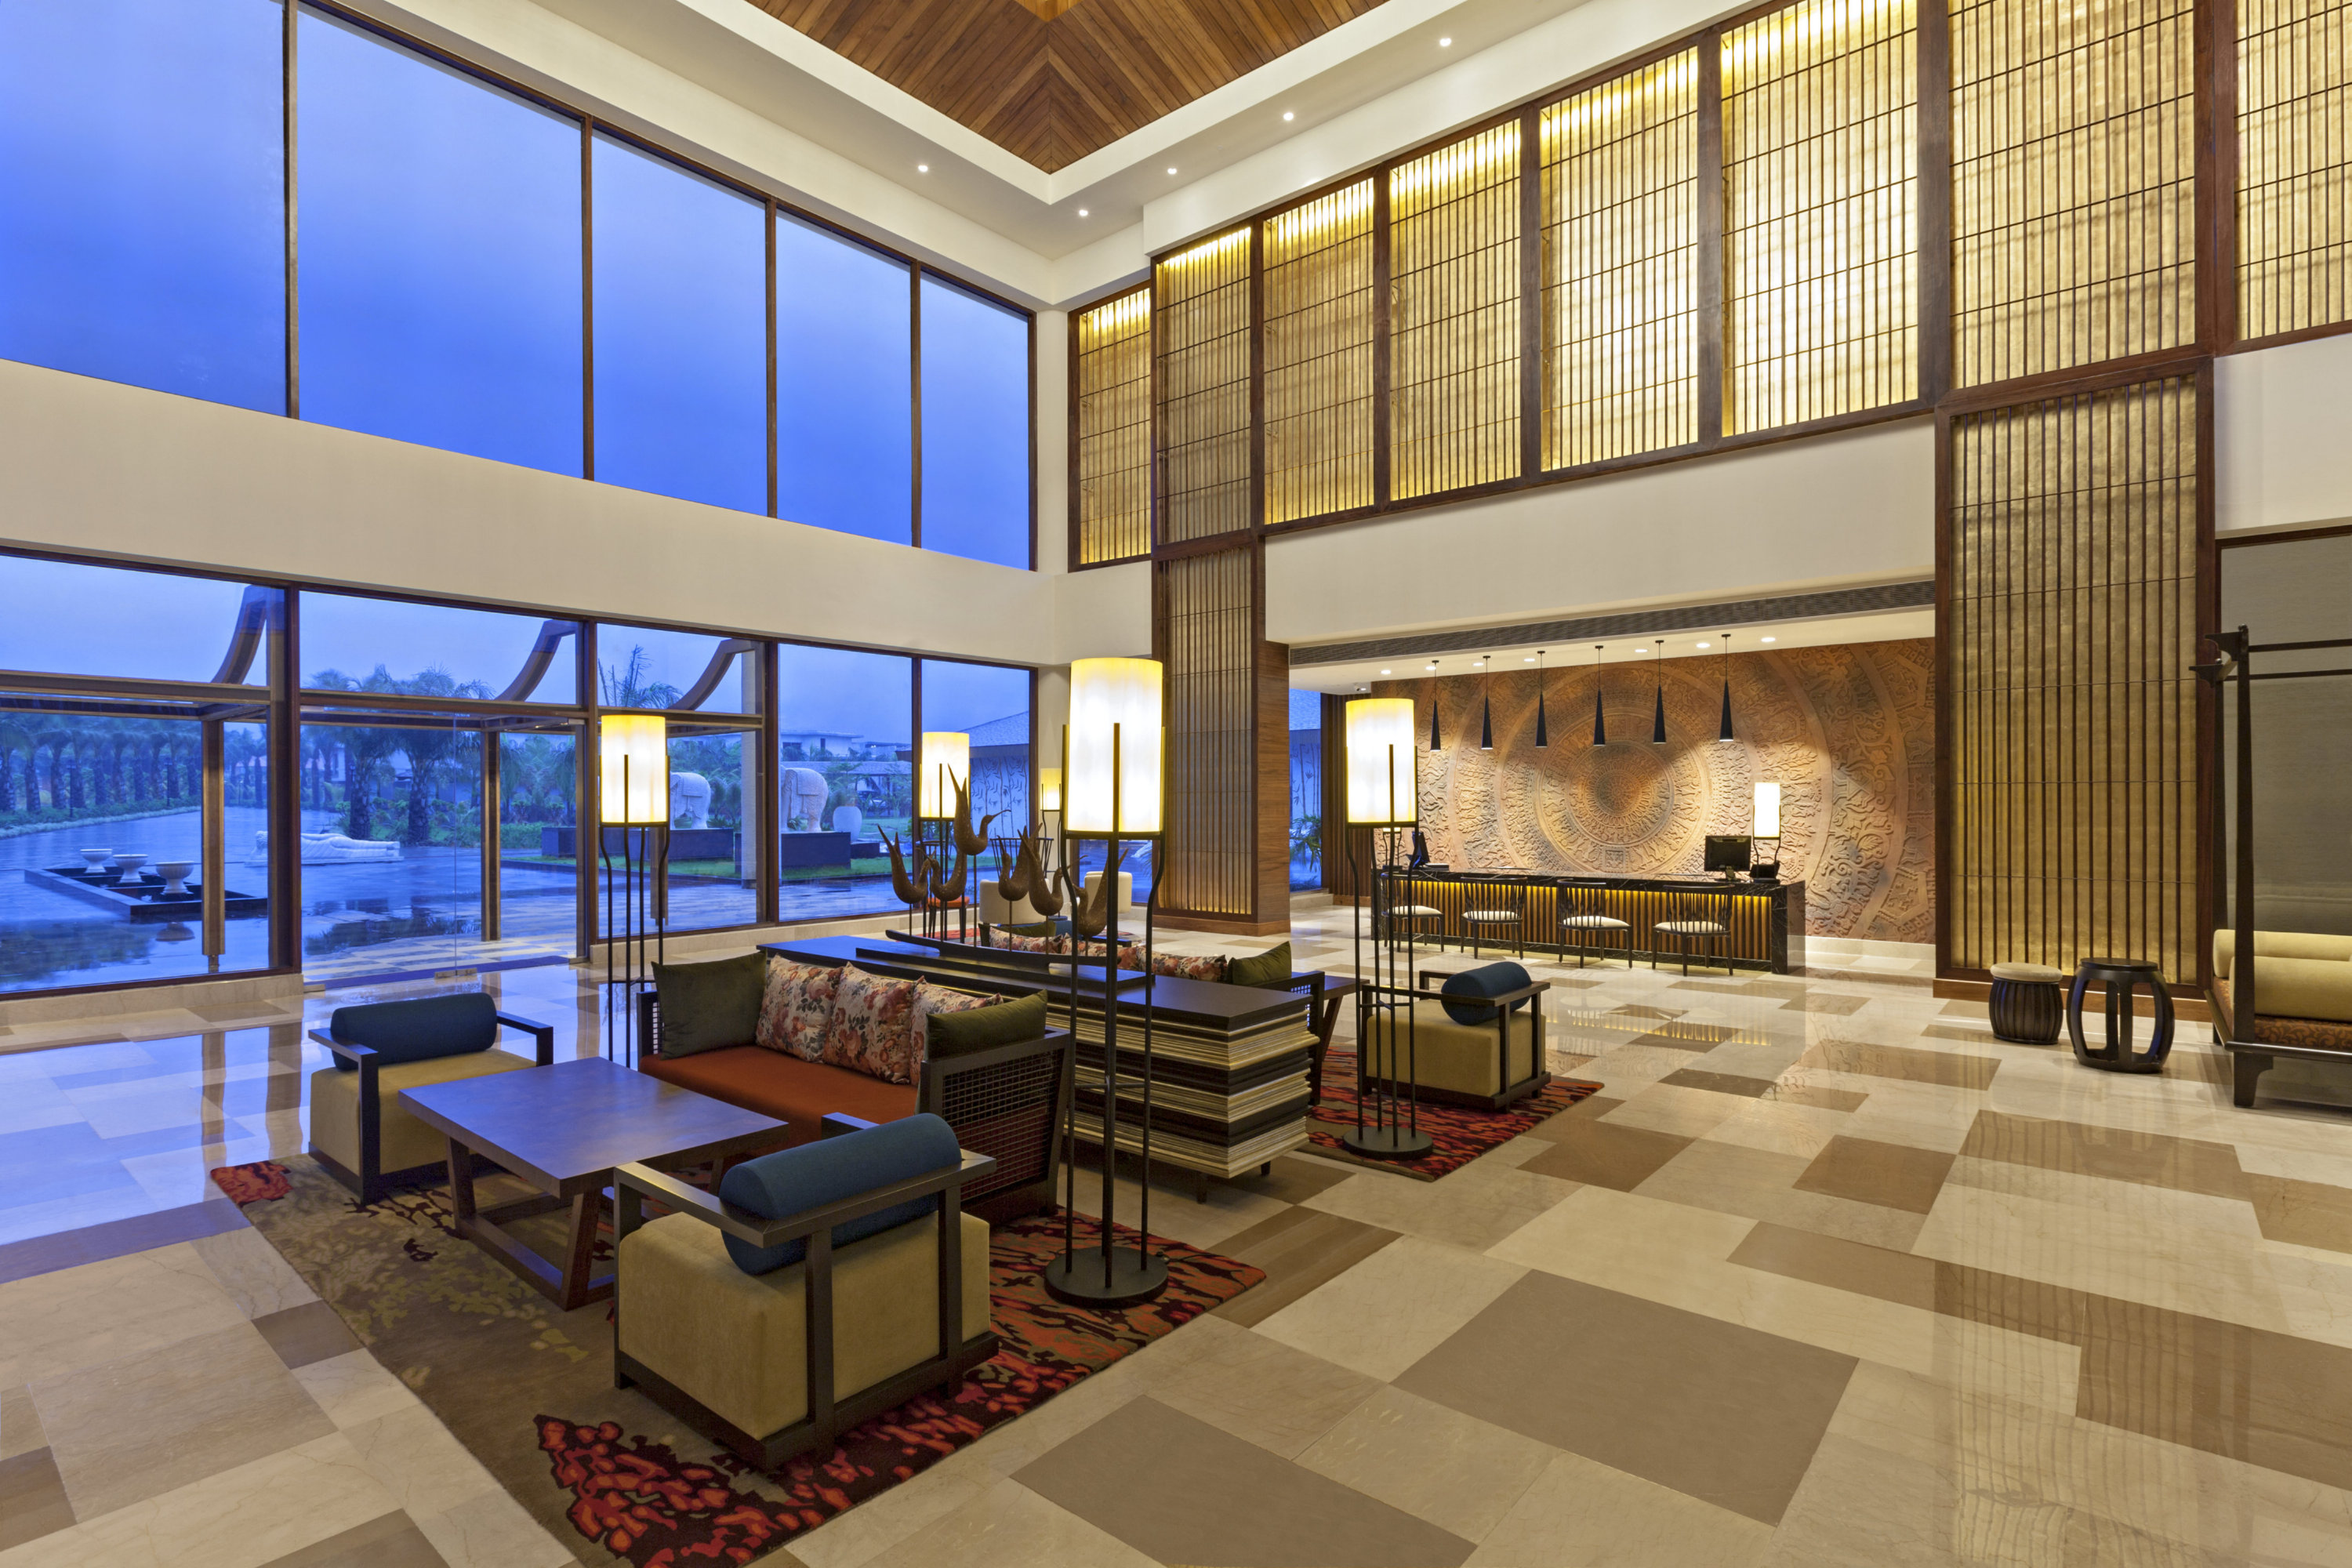 Karjat India  city photos gallery : ... Blu opens its first Resort and Spa in Karjat, India – brandturks